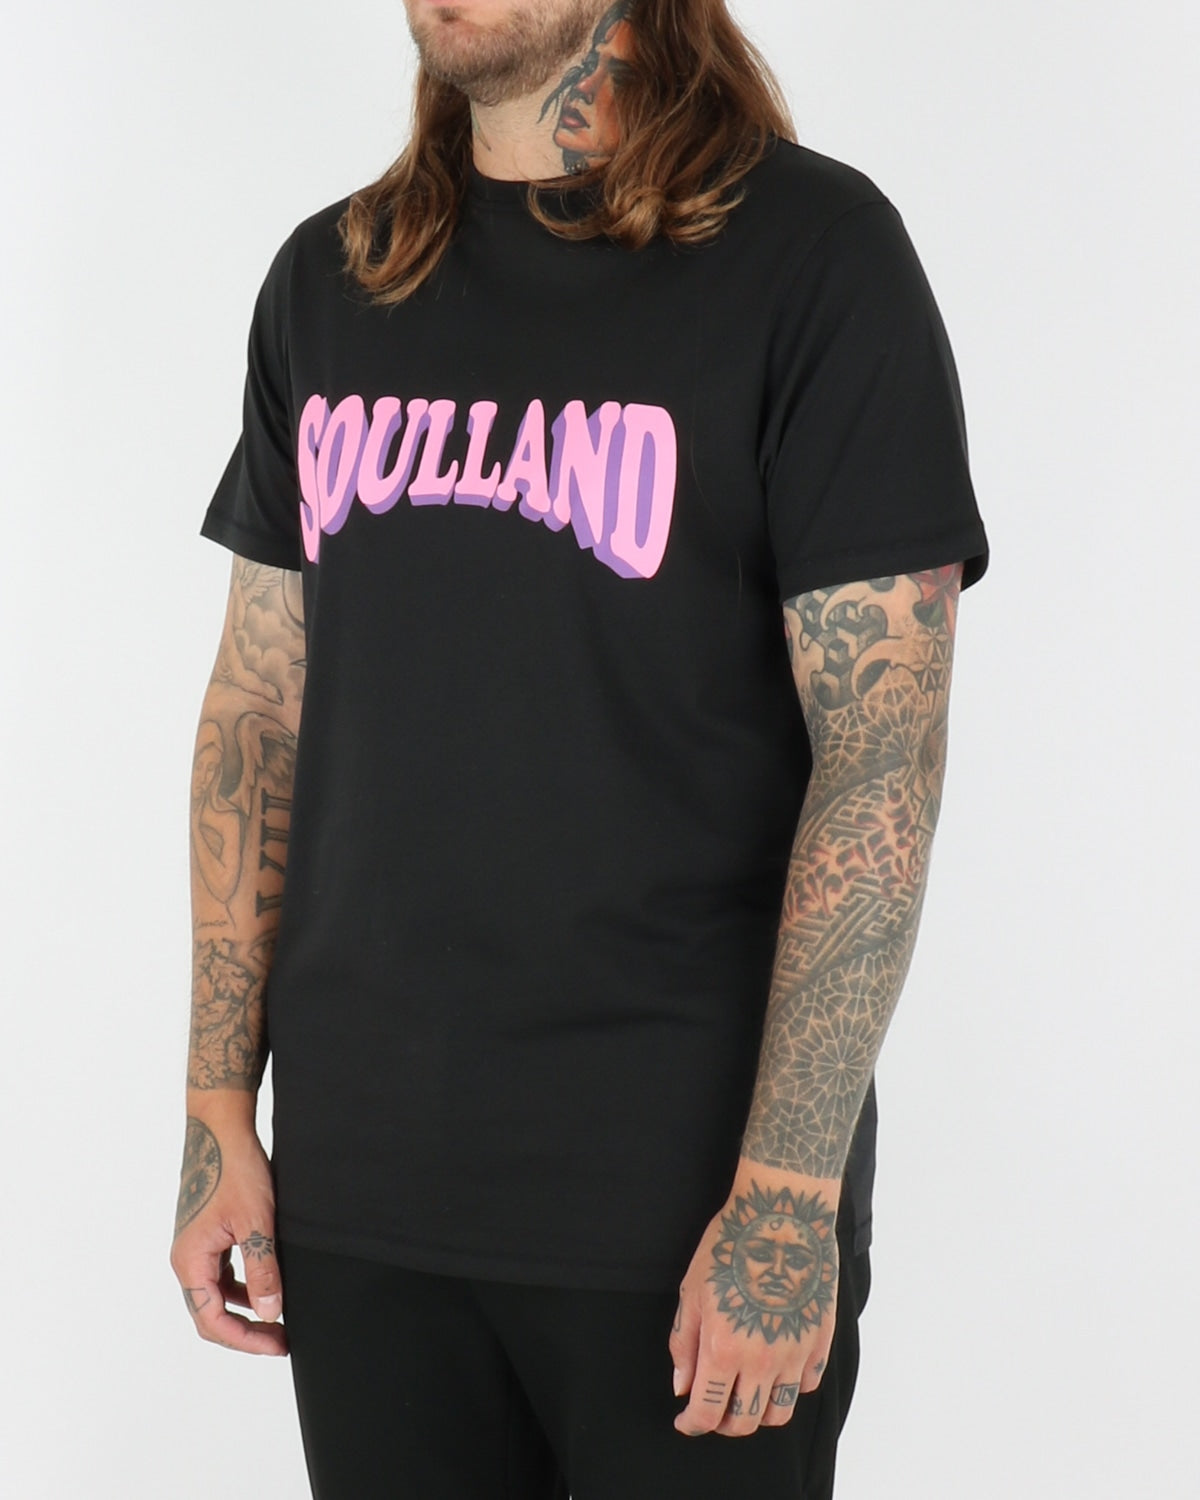 soulland_guido t-shirt_black_2_3